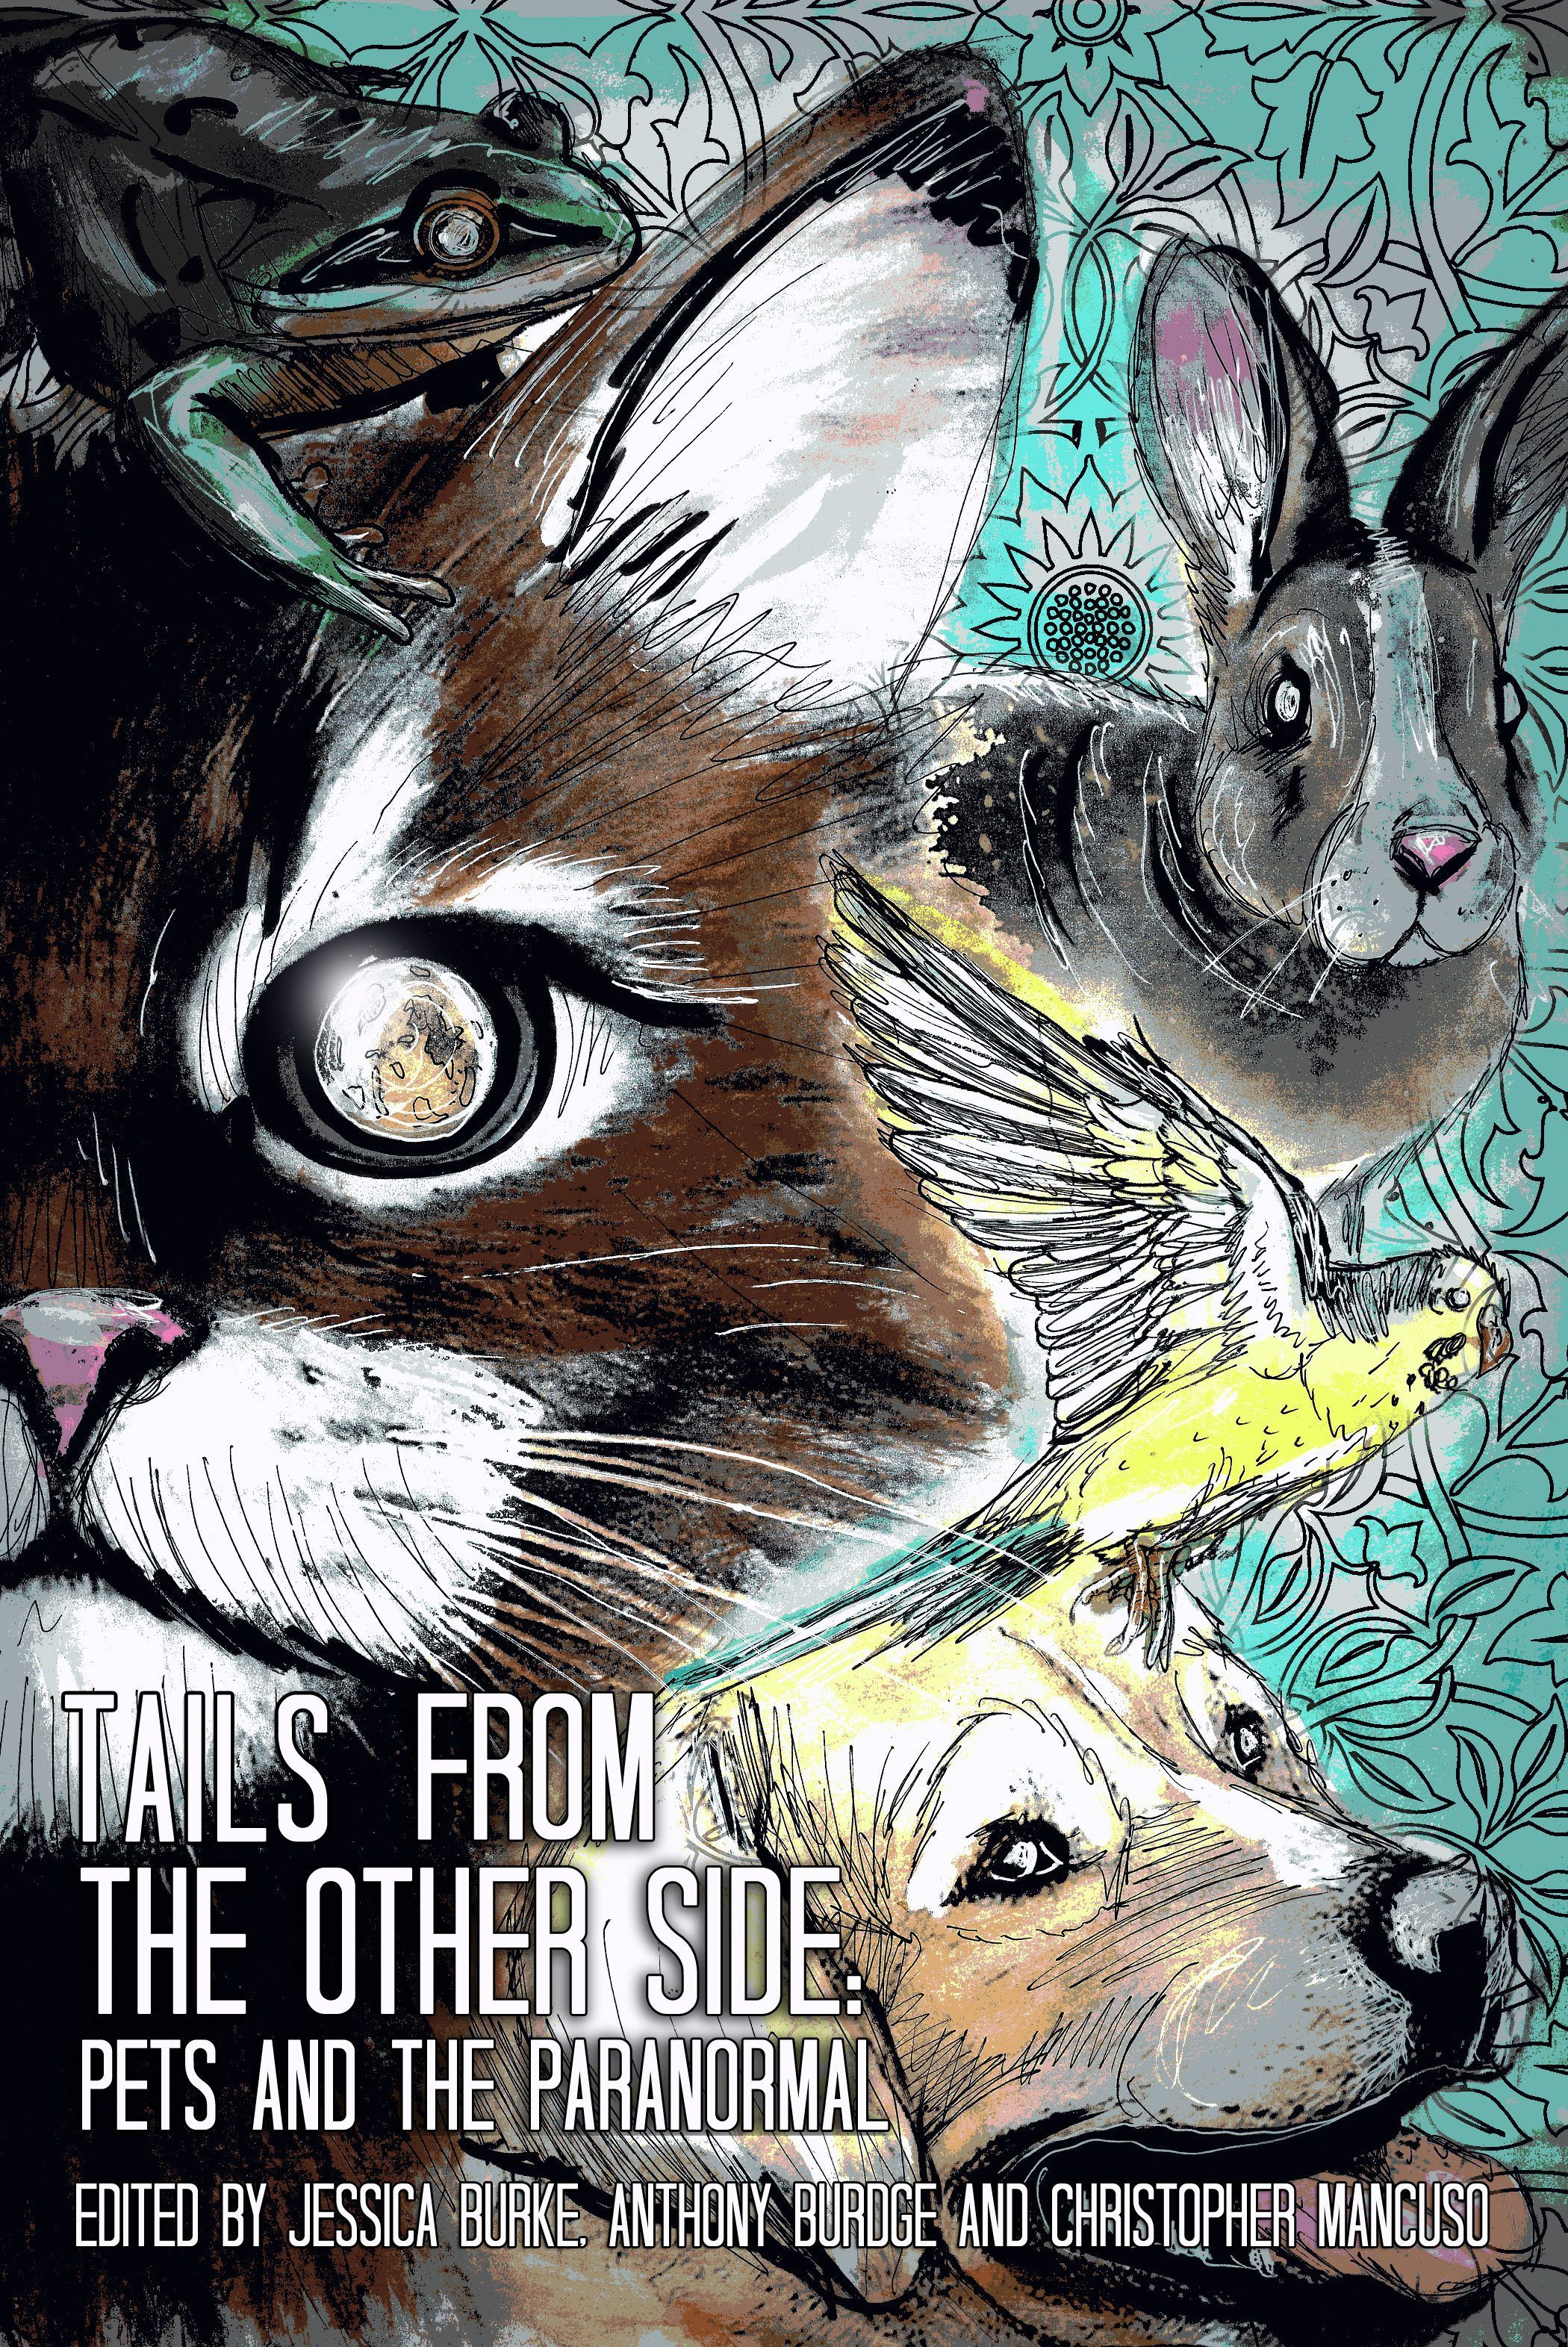 TAILS+FROM+THE+OTHER+SIDE: Pets+and+the+Paranormal  Edited+by+Jessica+Burke,+Anthony+Burdge+&+Christopher+Mancuso Illustrated+by+Luke+Spooner+of+Carrion+House  Pre-Order+Now+Available Halloween+2016+publication To+be+shipped+Mid-October Pre-Ordering+Now+Assists+with+production+and+early+...